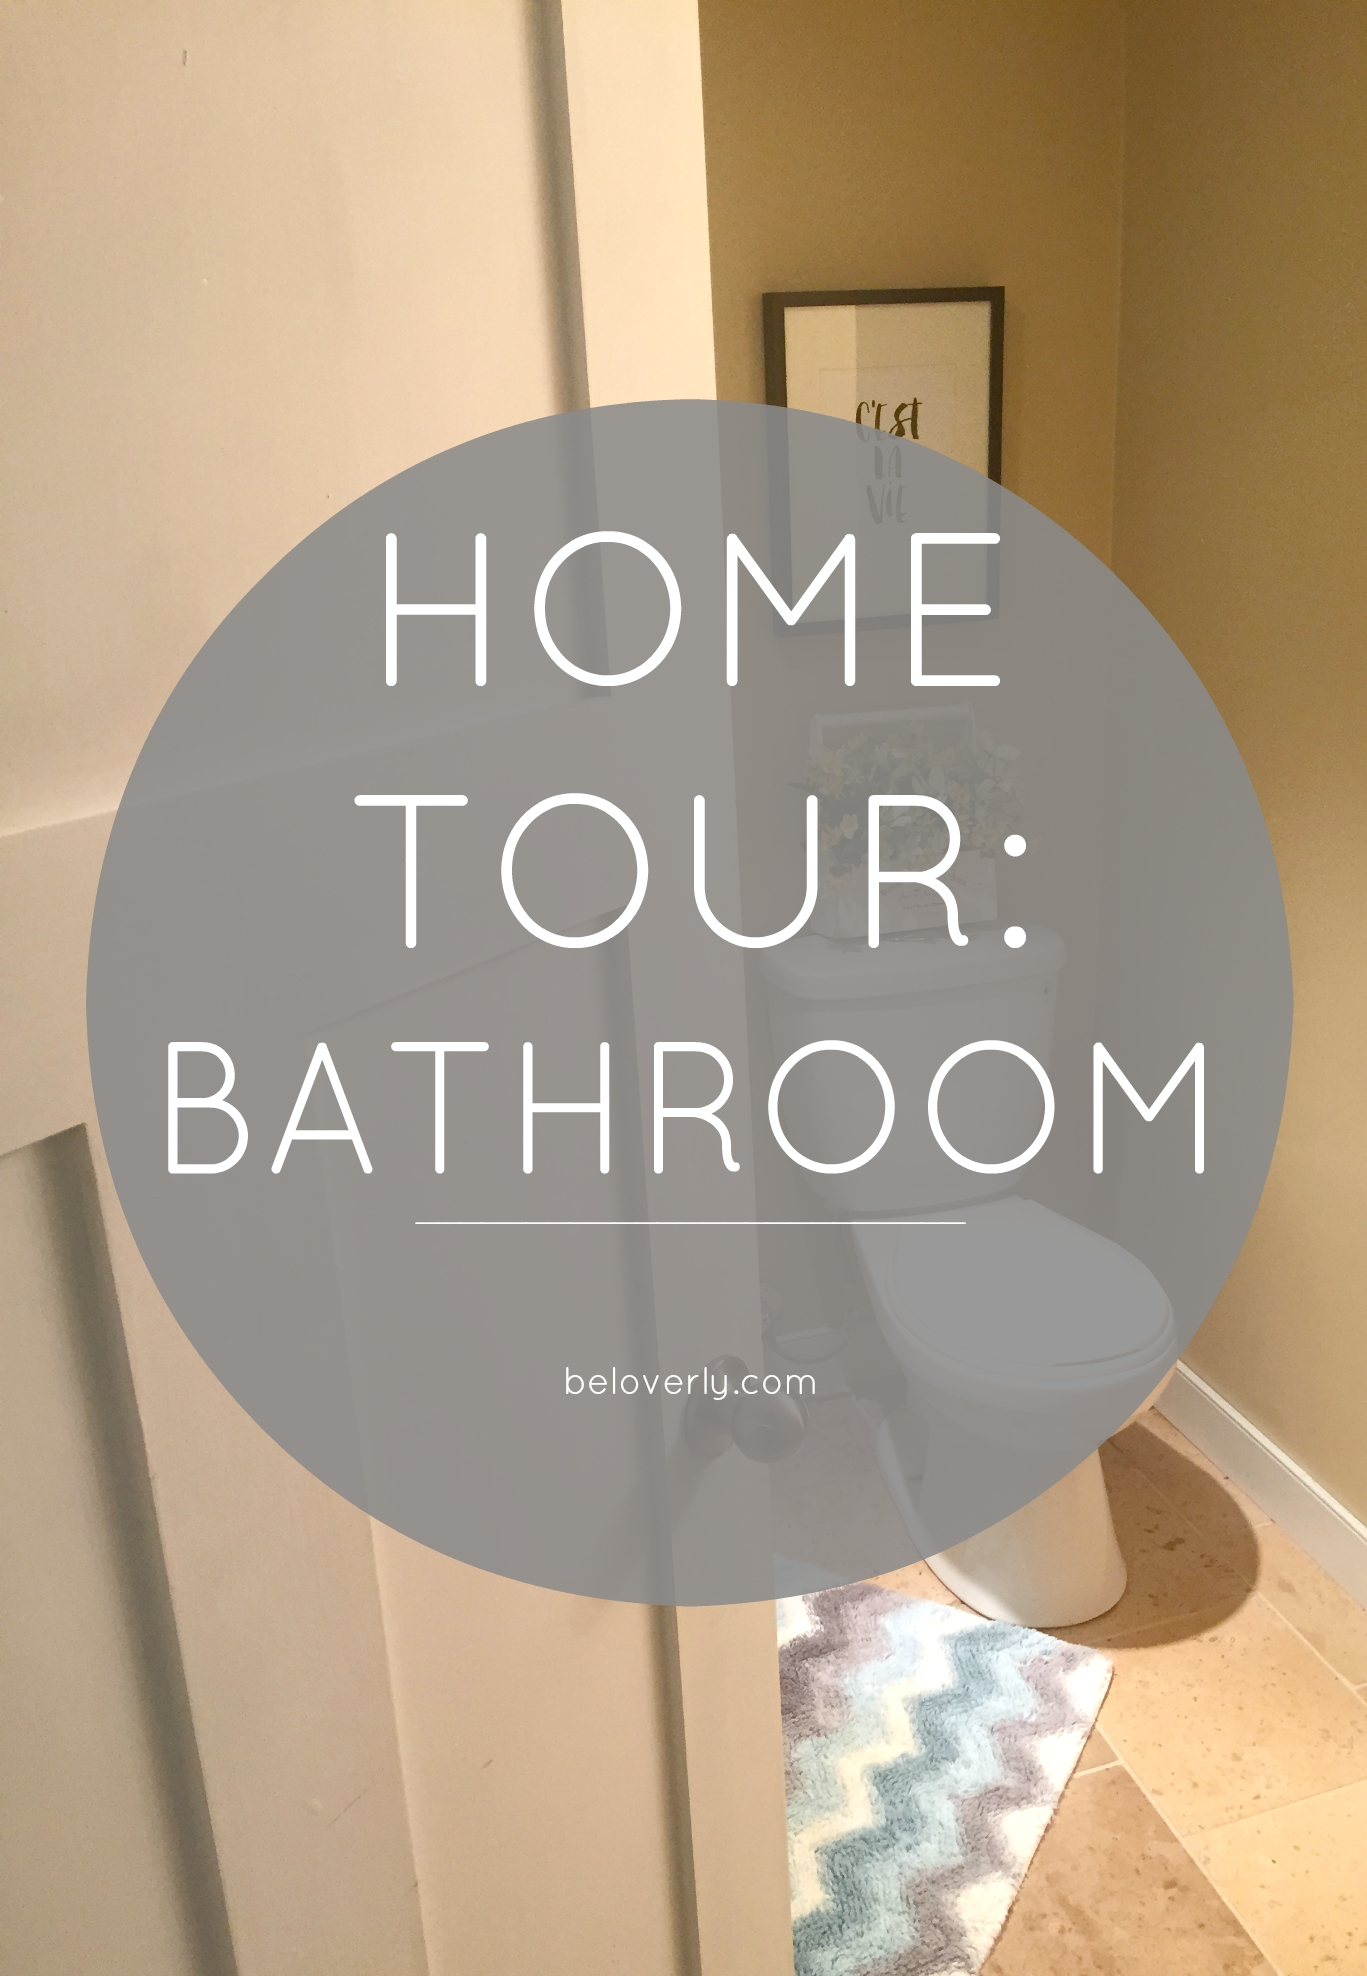 hometourbathroom